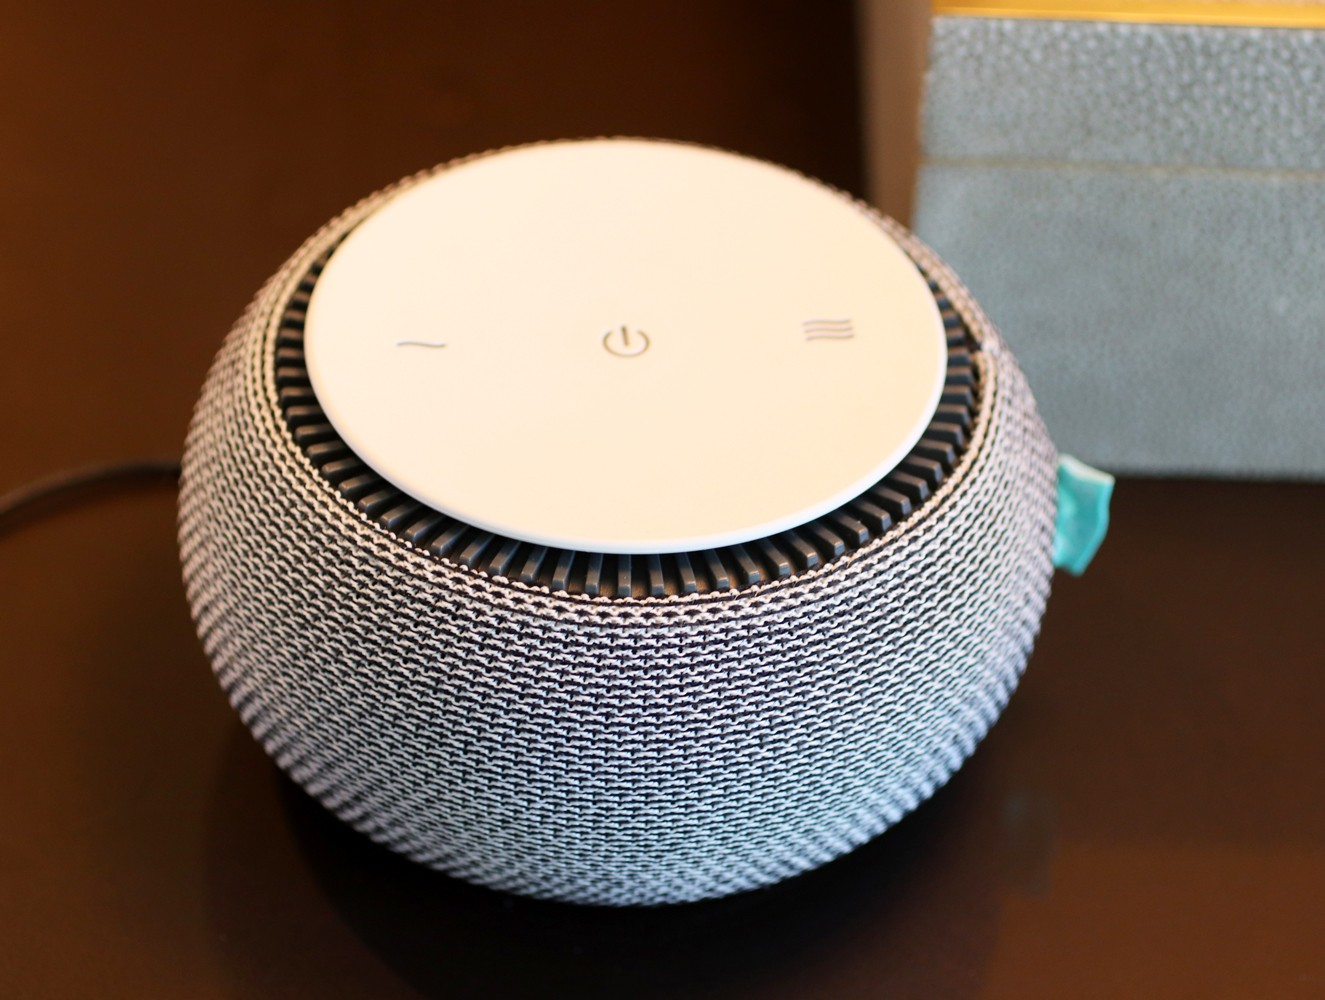 Snooz White Noise Machine Review by popular Los Angeles lifestyle blogger My Beauty Bunny